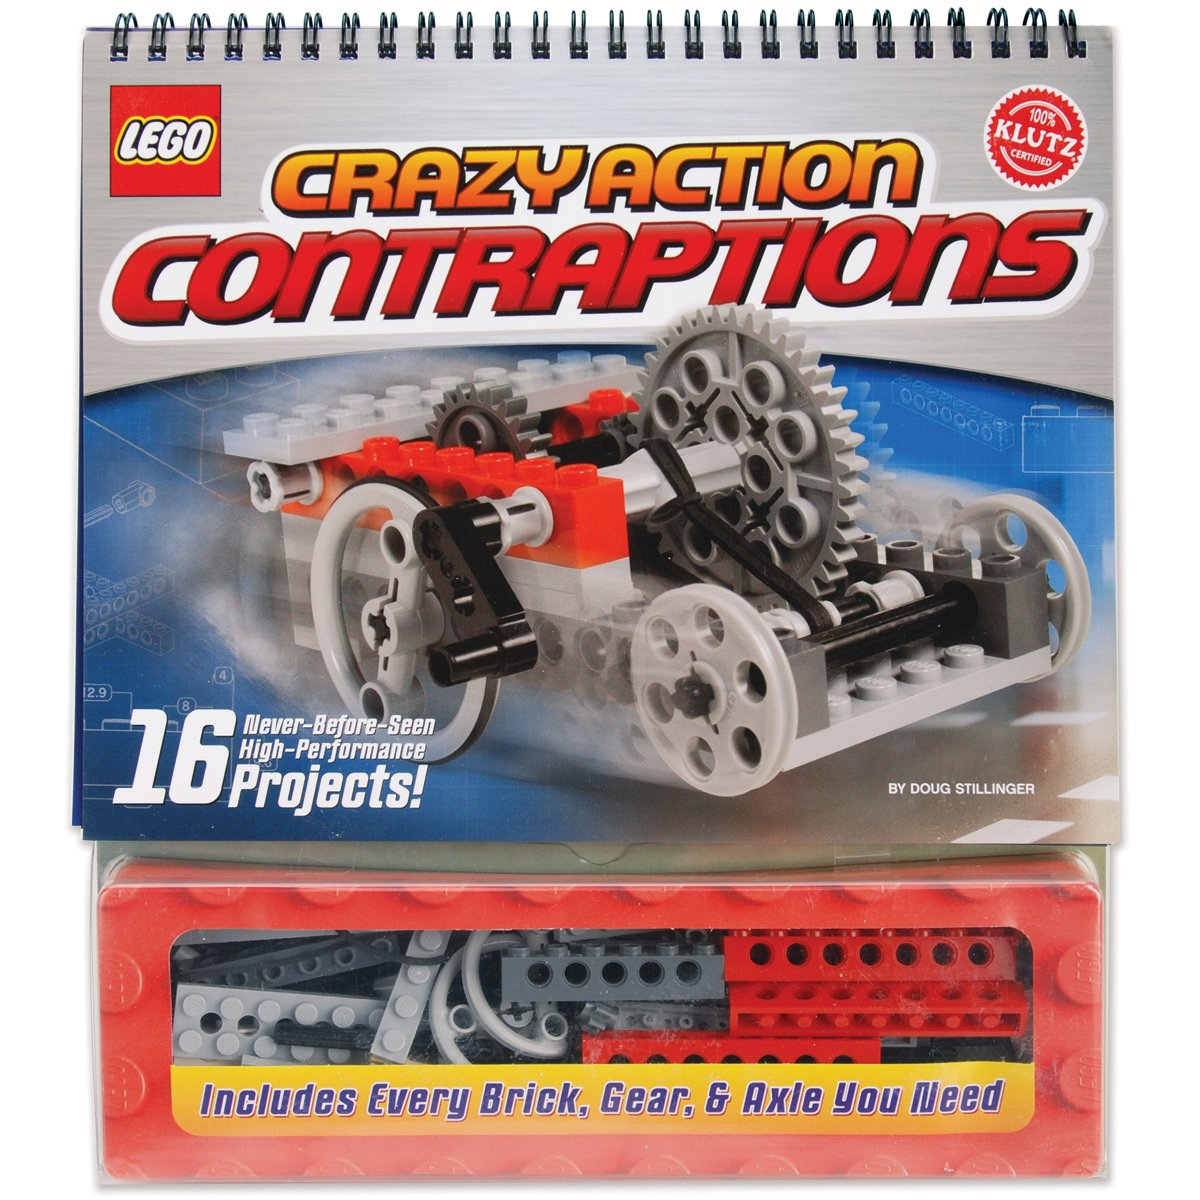 Lego Crazy Action Contraptions Kit Only $13.17! (Reg. $21.95!)